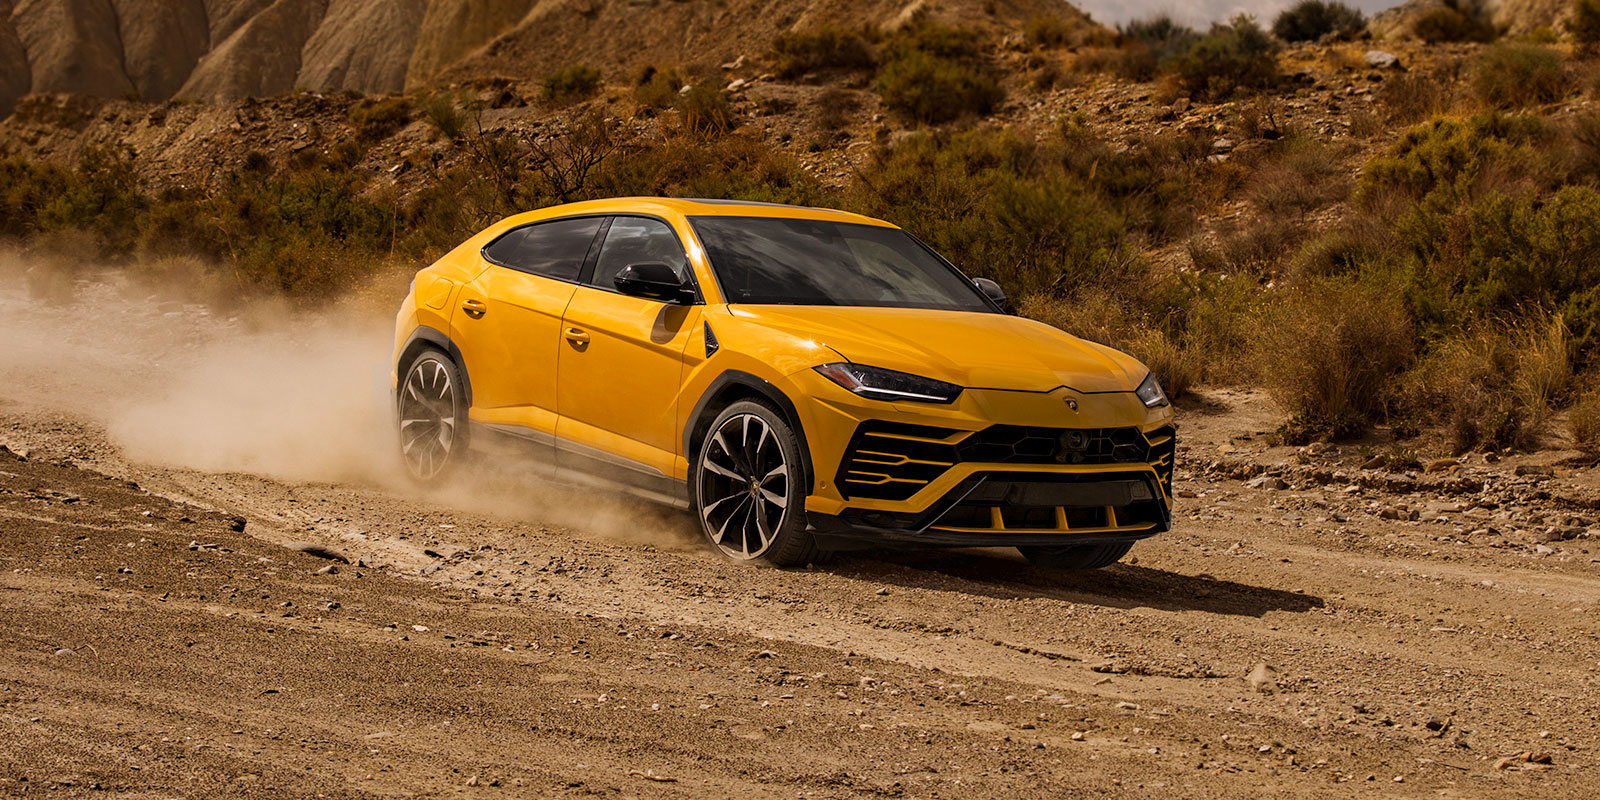 Lamborghini Urus - The World's First Super Sport Utility Vehicle image 1